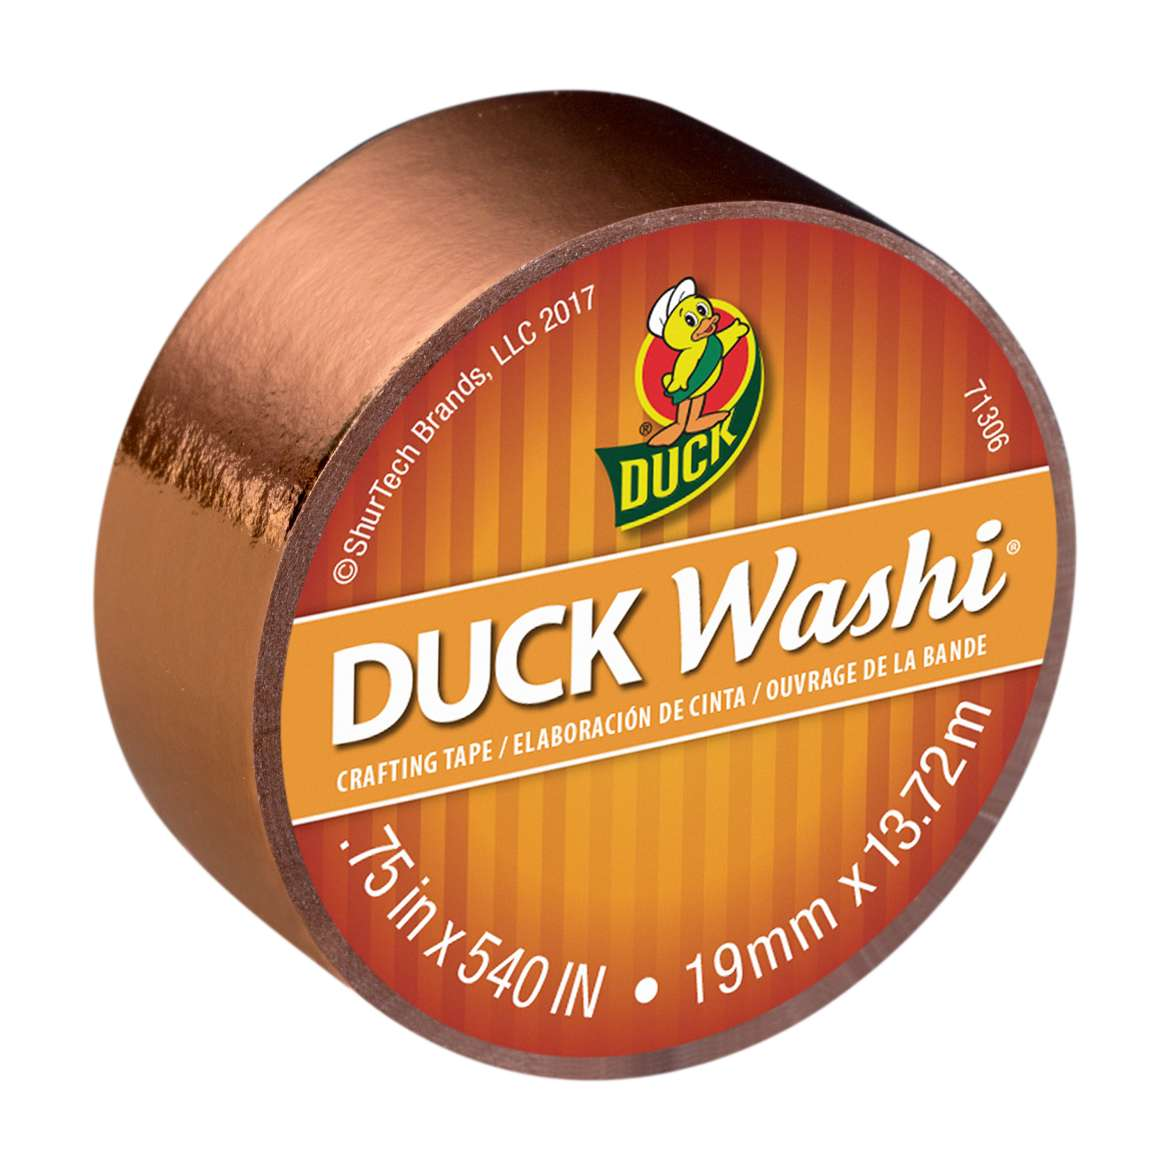 Duck Washi® Crafting Tape- Metallic Copper, 0.75 in. x 15 yd. Image